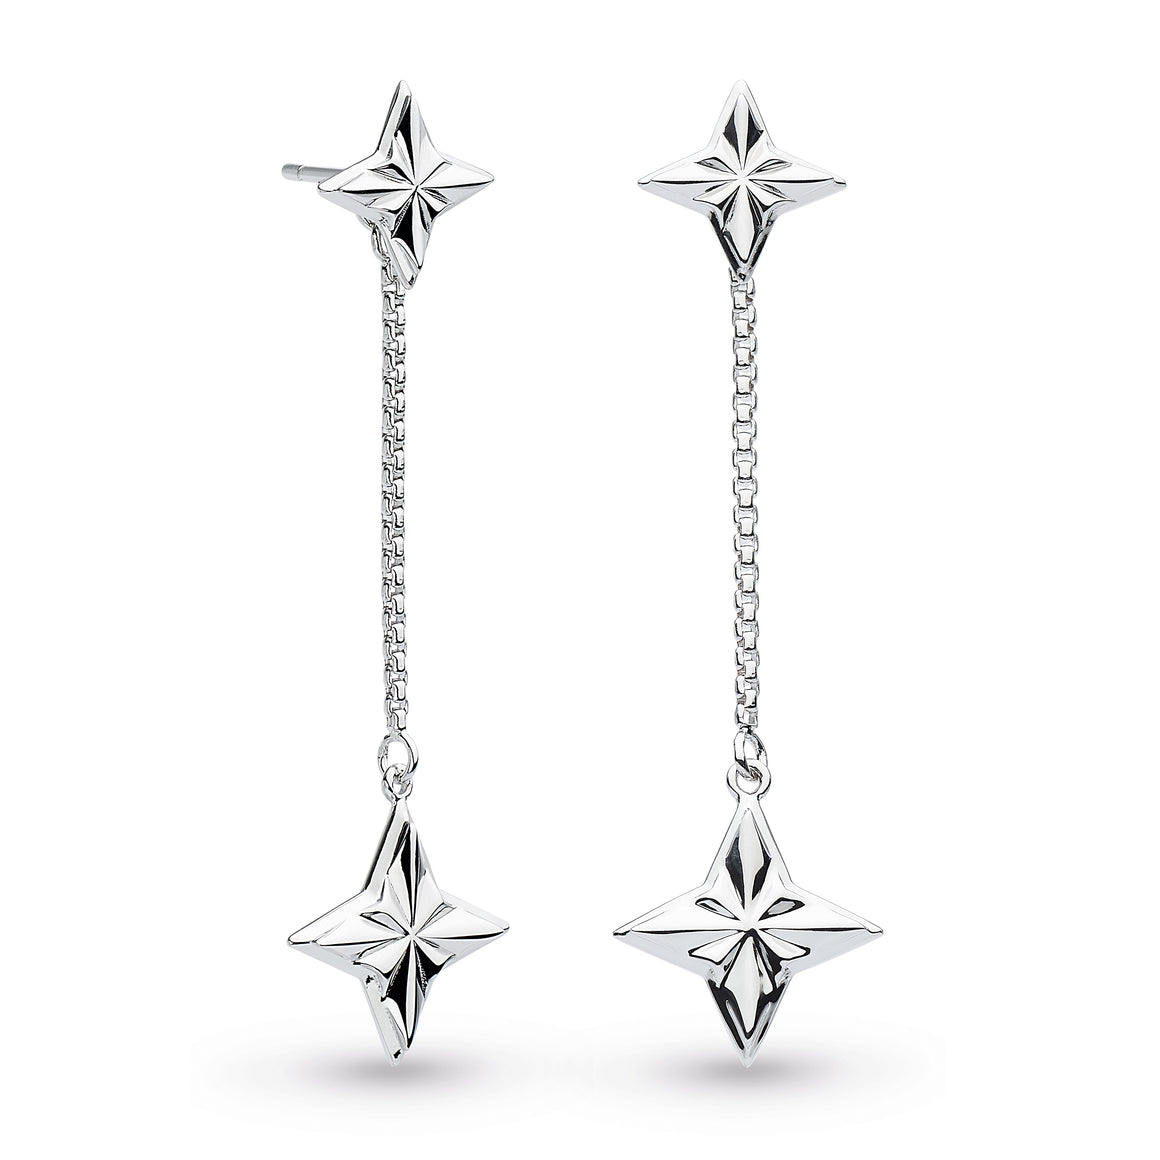 Empire Astoria Star Doublewear Earrings - 60406rp029